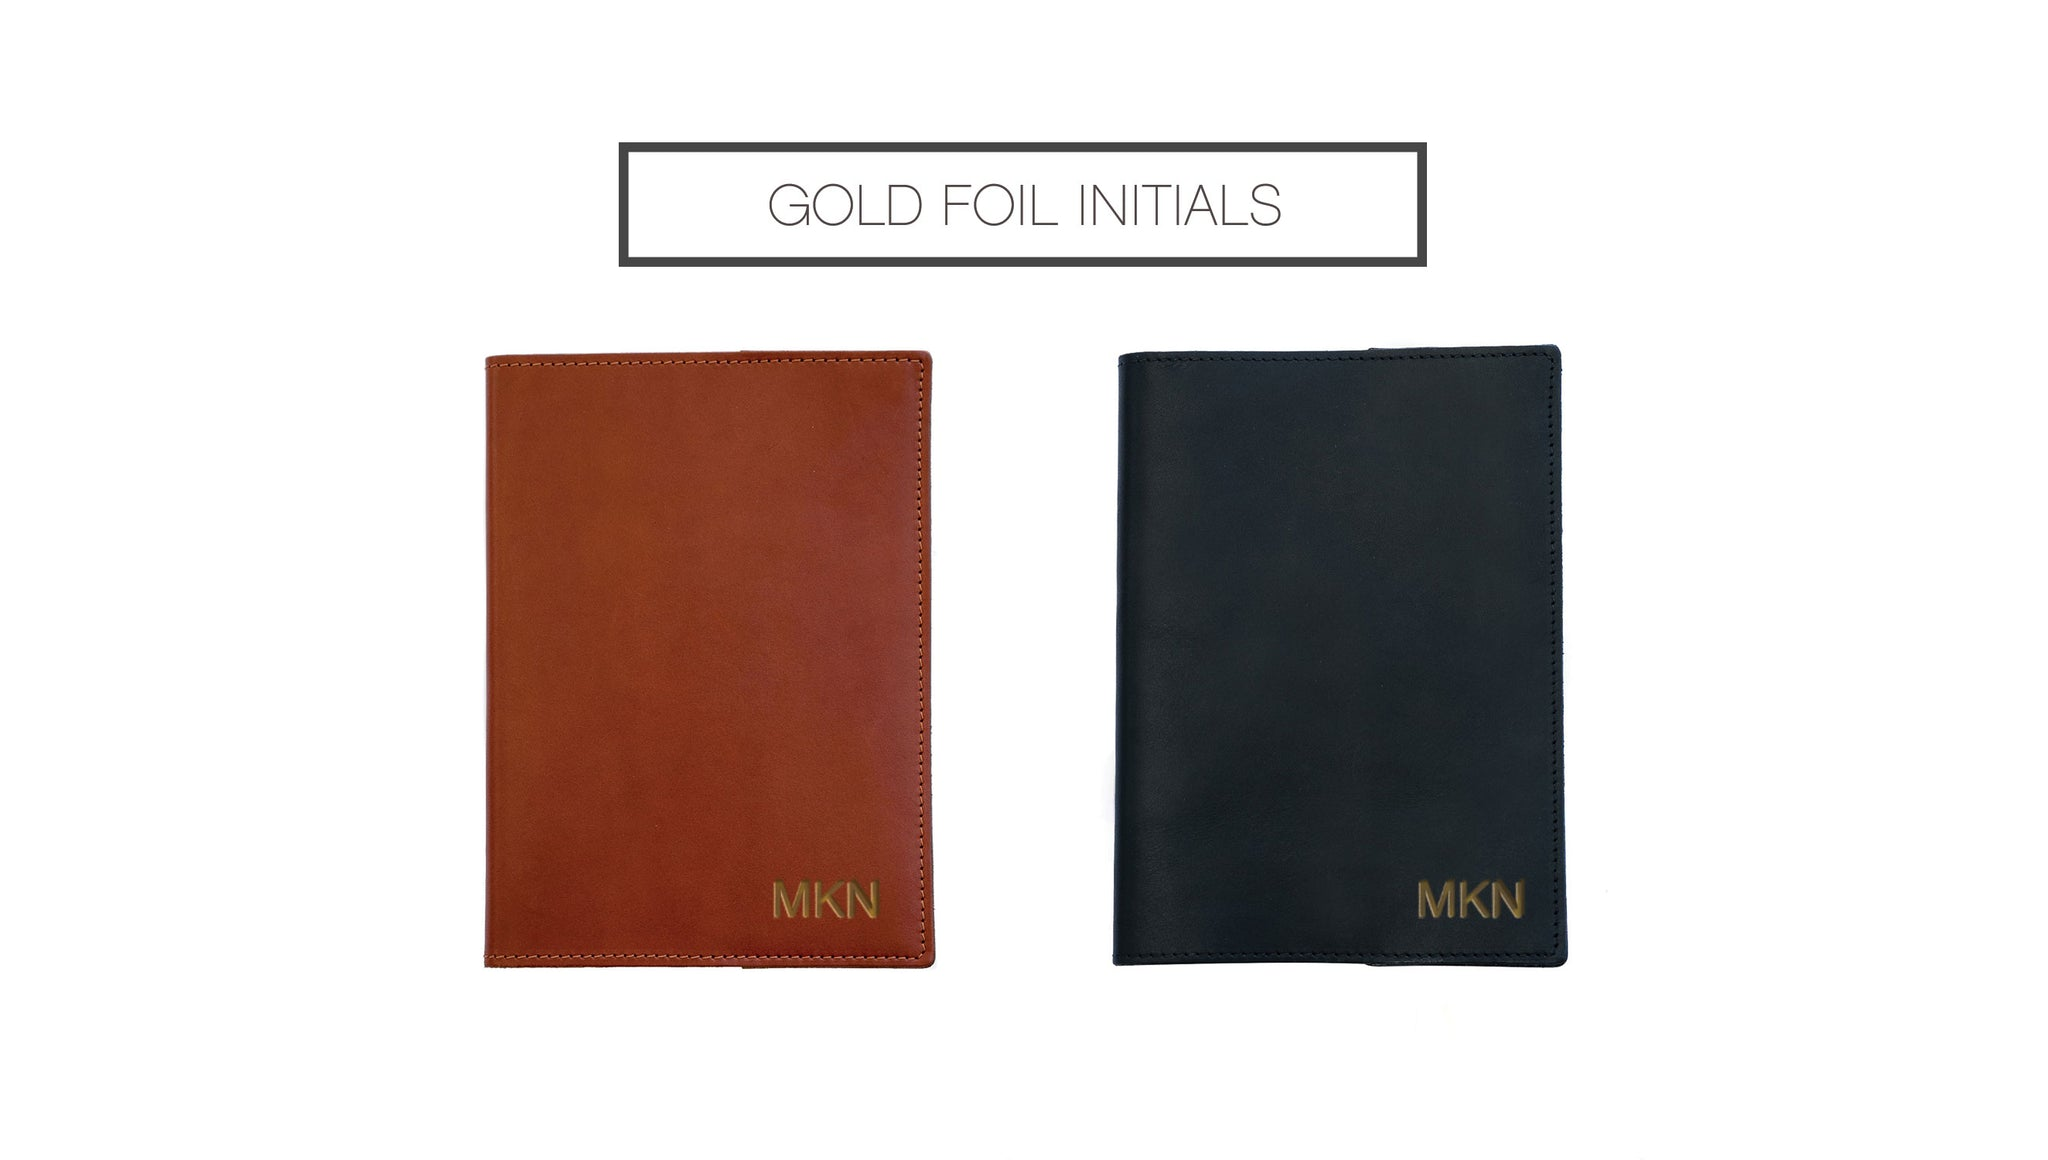 FOTO's genuine leather journal can be personalized with gold foil initials. Initials must be entered in the exact order you would like them to appear on the journal.